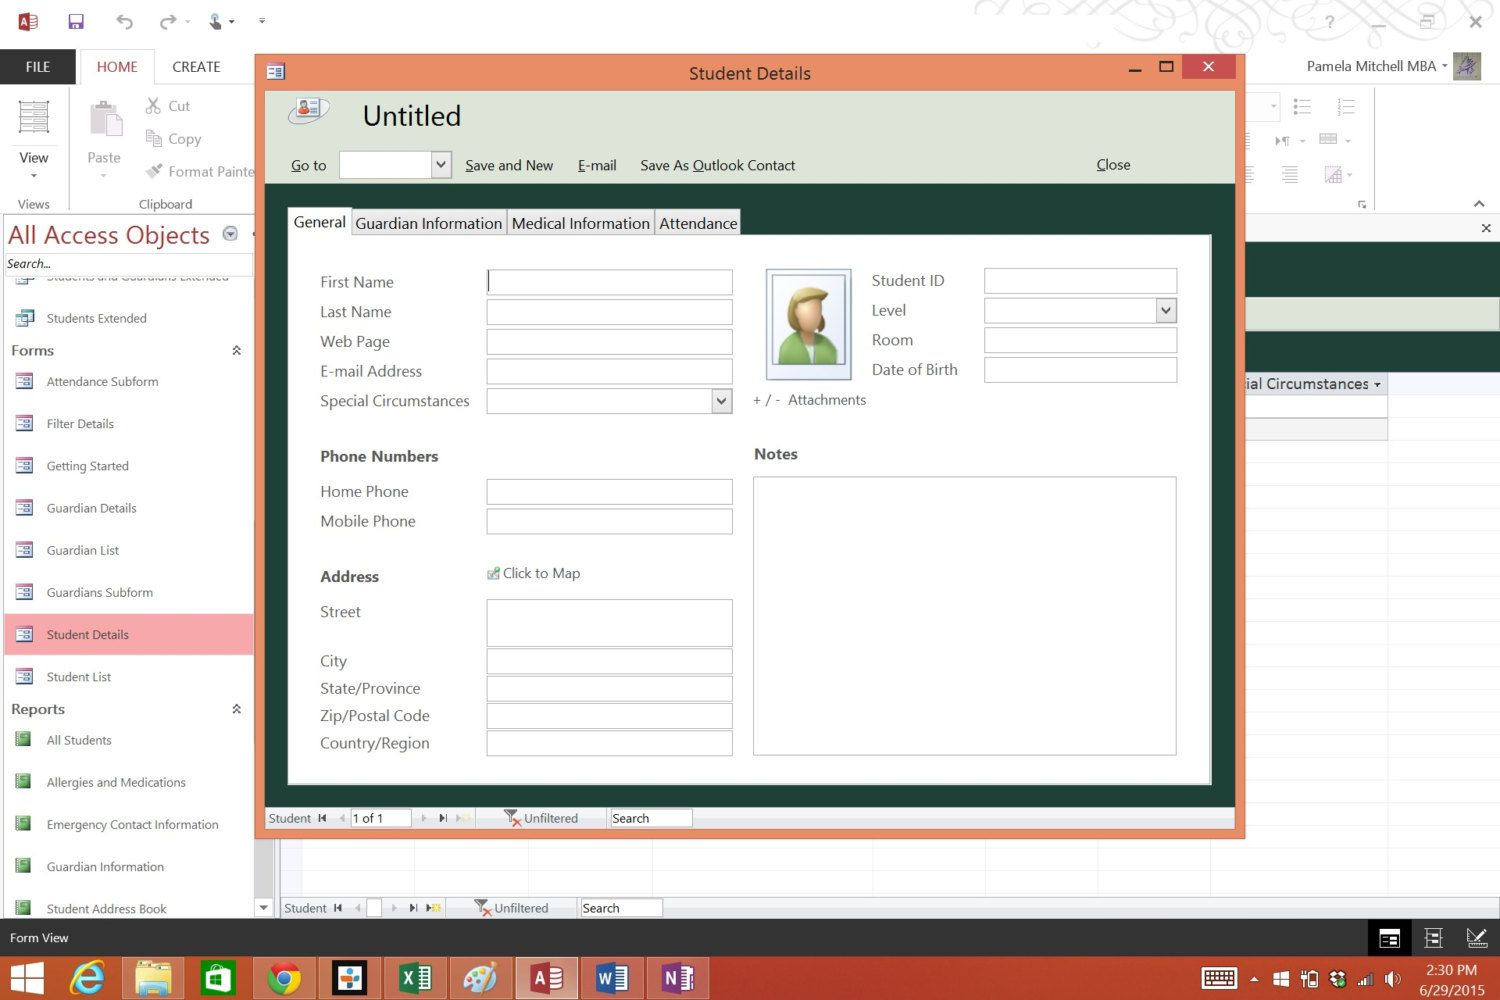 Classroom Manager Database Template By Pmmba On Etsy